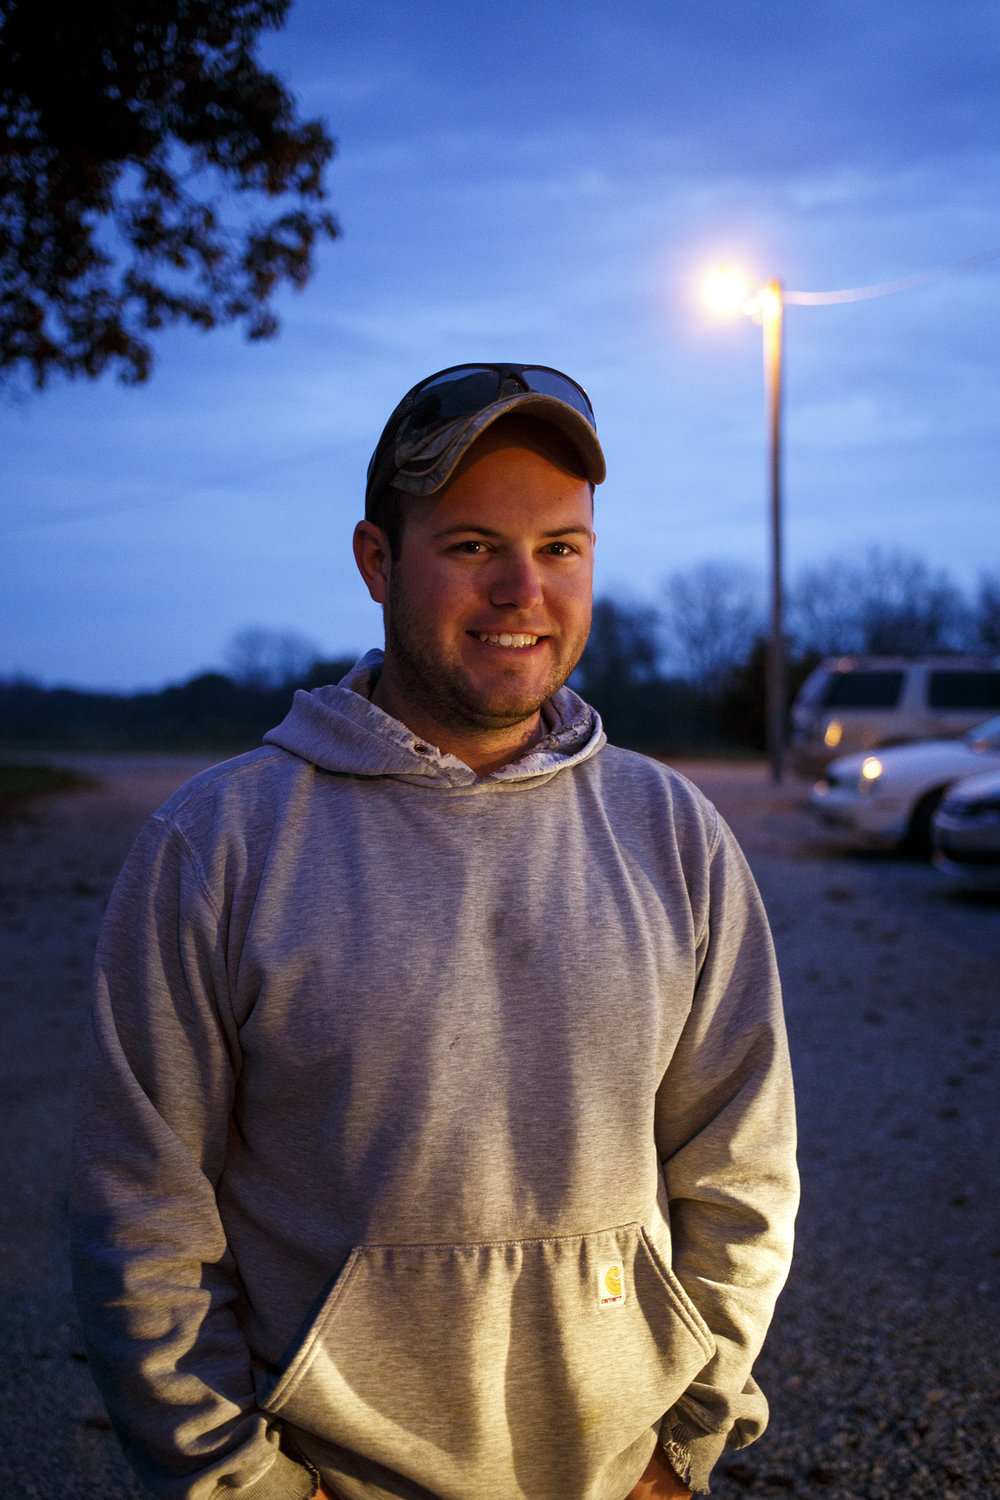 Cody Smith, 6:21 a.m., Buffalo Hart Presbyterian Church